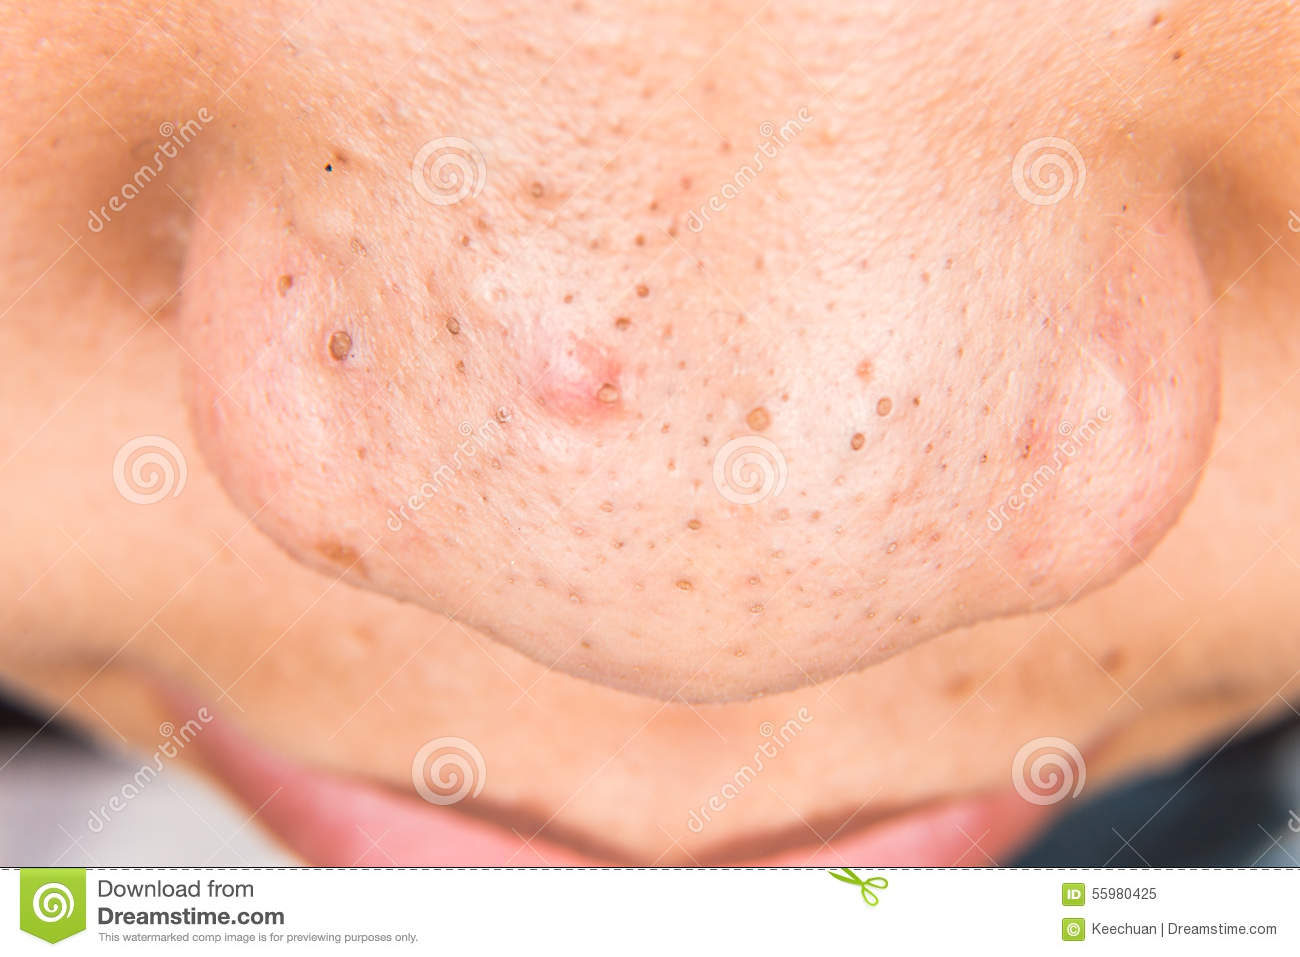 Akne Entfernen Ugly Pimples, Acne, Zit And Blackheads On The Nose Of A